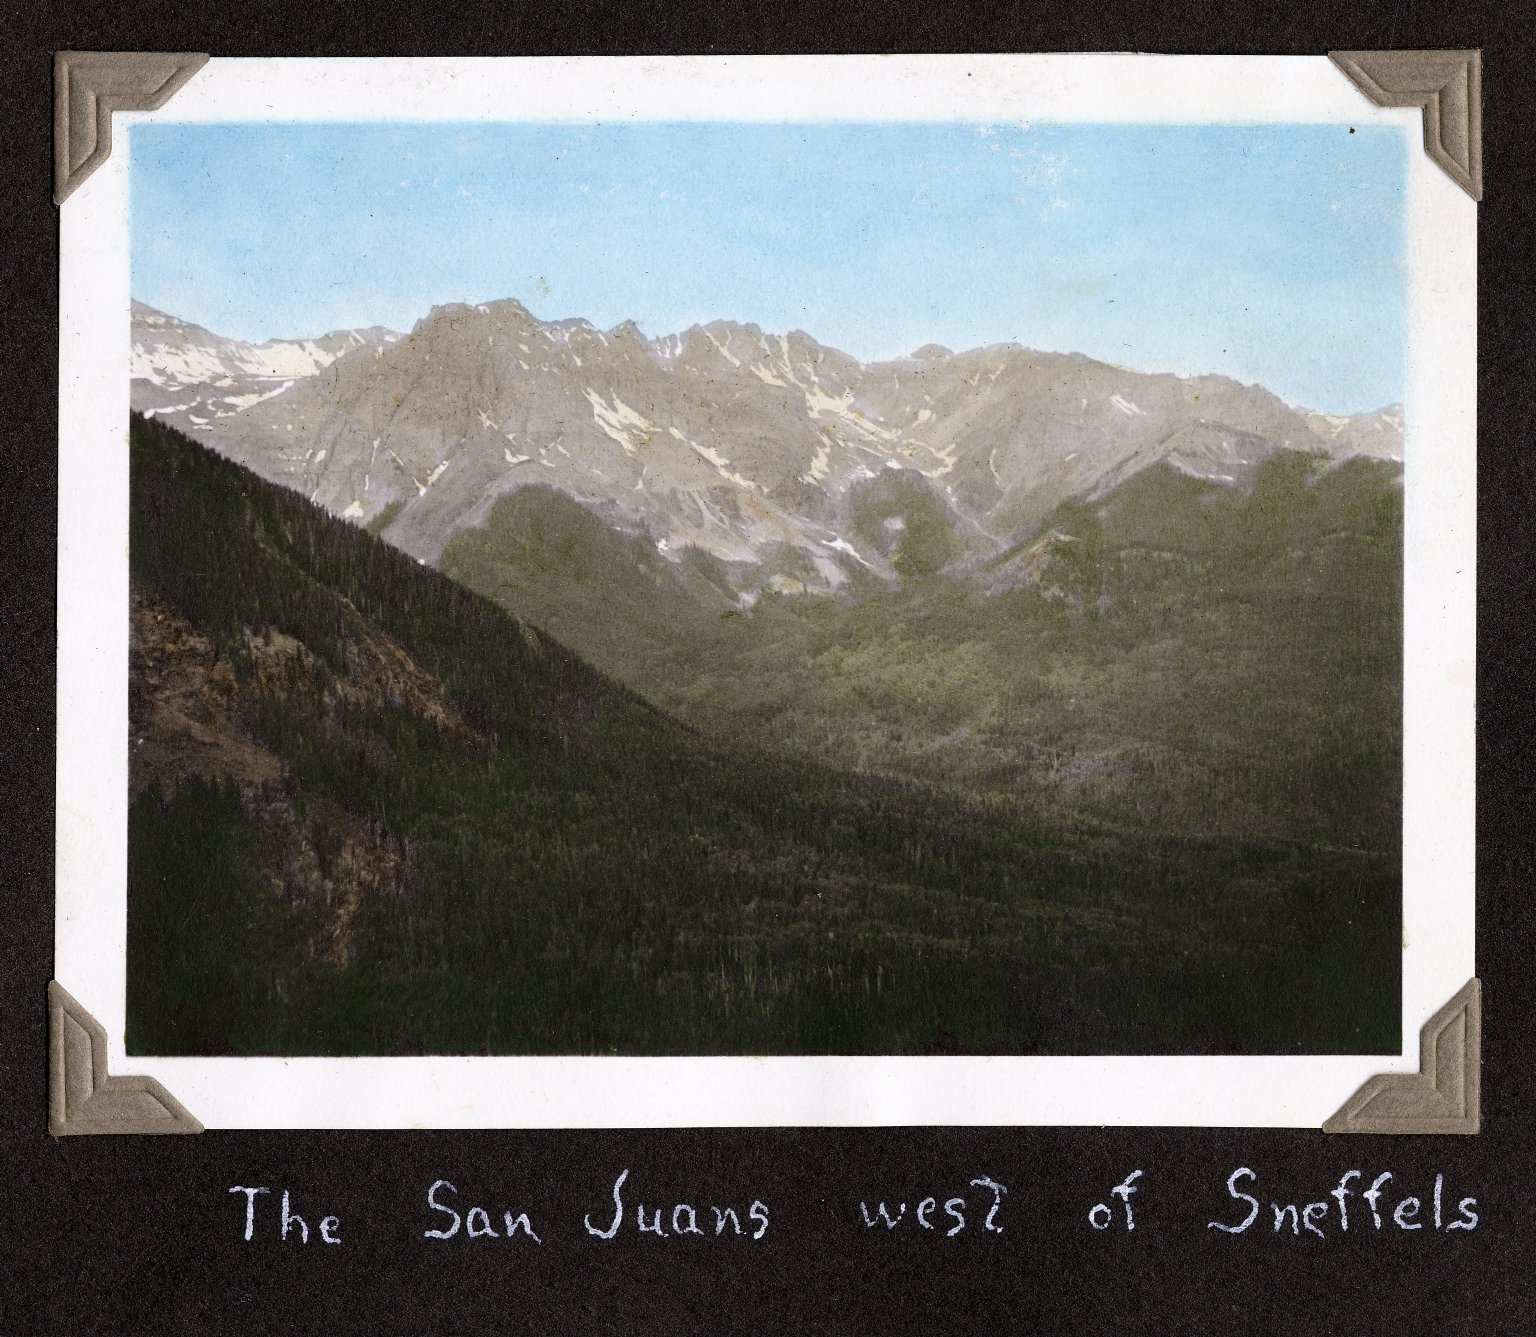 The San Jauns West of Sneffels